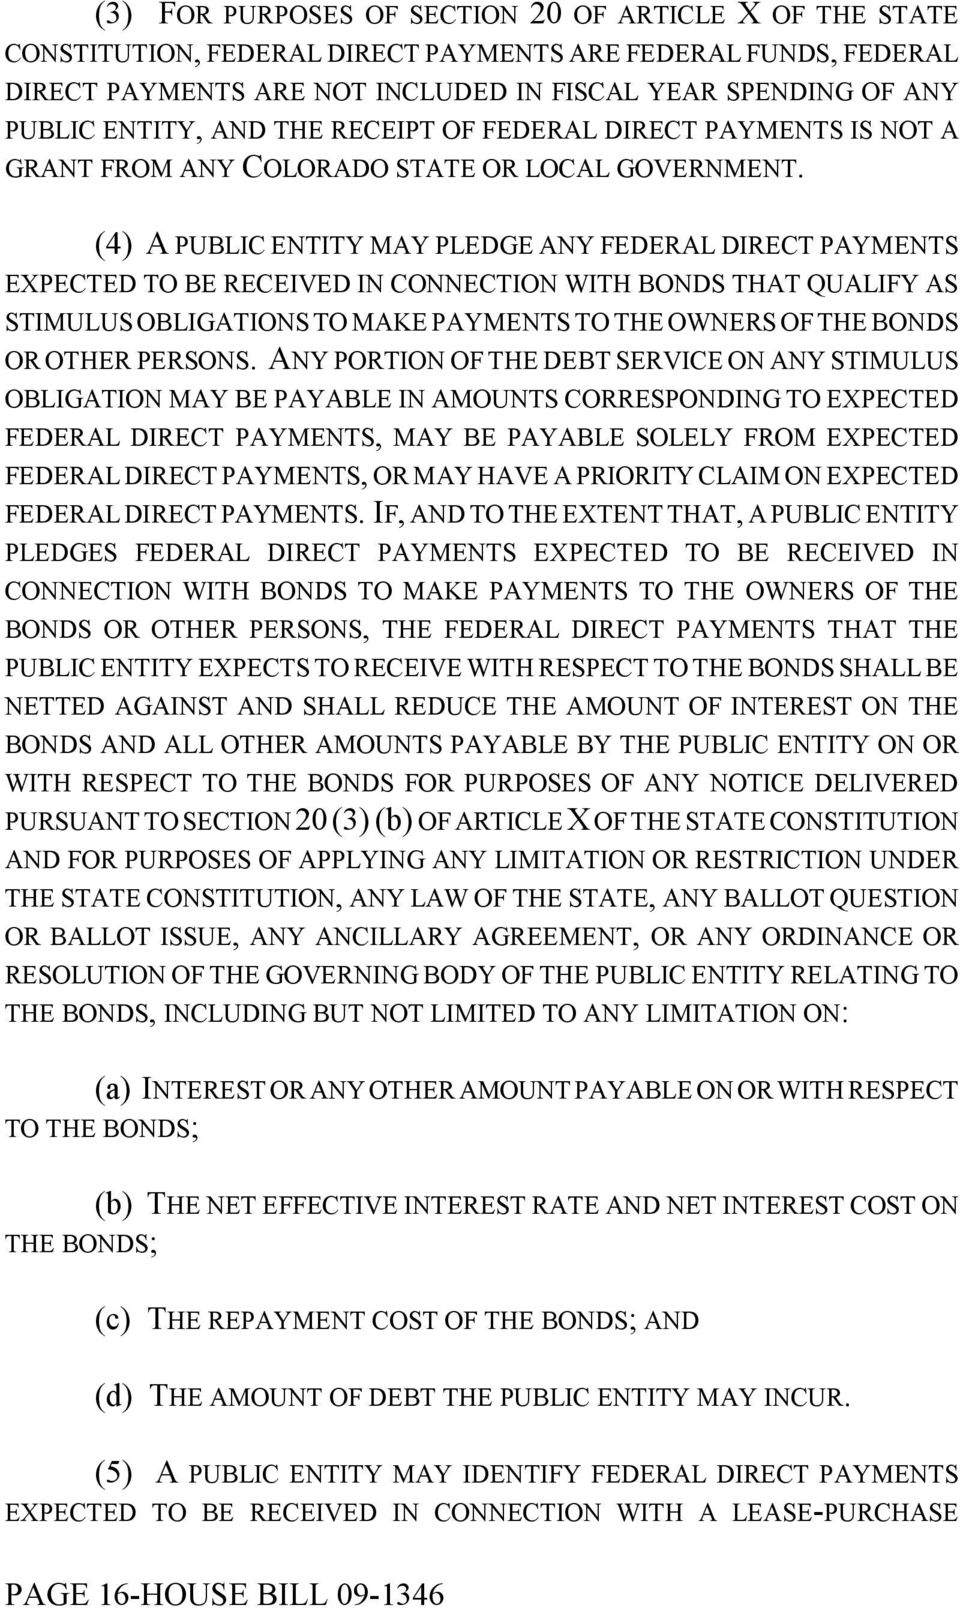 (4) A PUBLIC ENTITY MAY PLEDGE ANY FEDERAL DIRECT PAYMENTS EXPECTED TO BE RECEIVED IN CONNECTION WITH BONDS THAT QUALIFY AS STIMULUS OBLIGATIONS TO MAKE PAYMENTS TO THE OWNERS OF THE BONDS OR OTHER